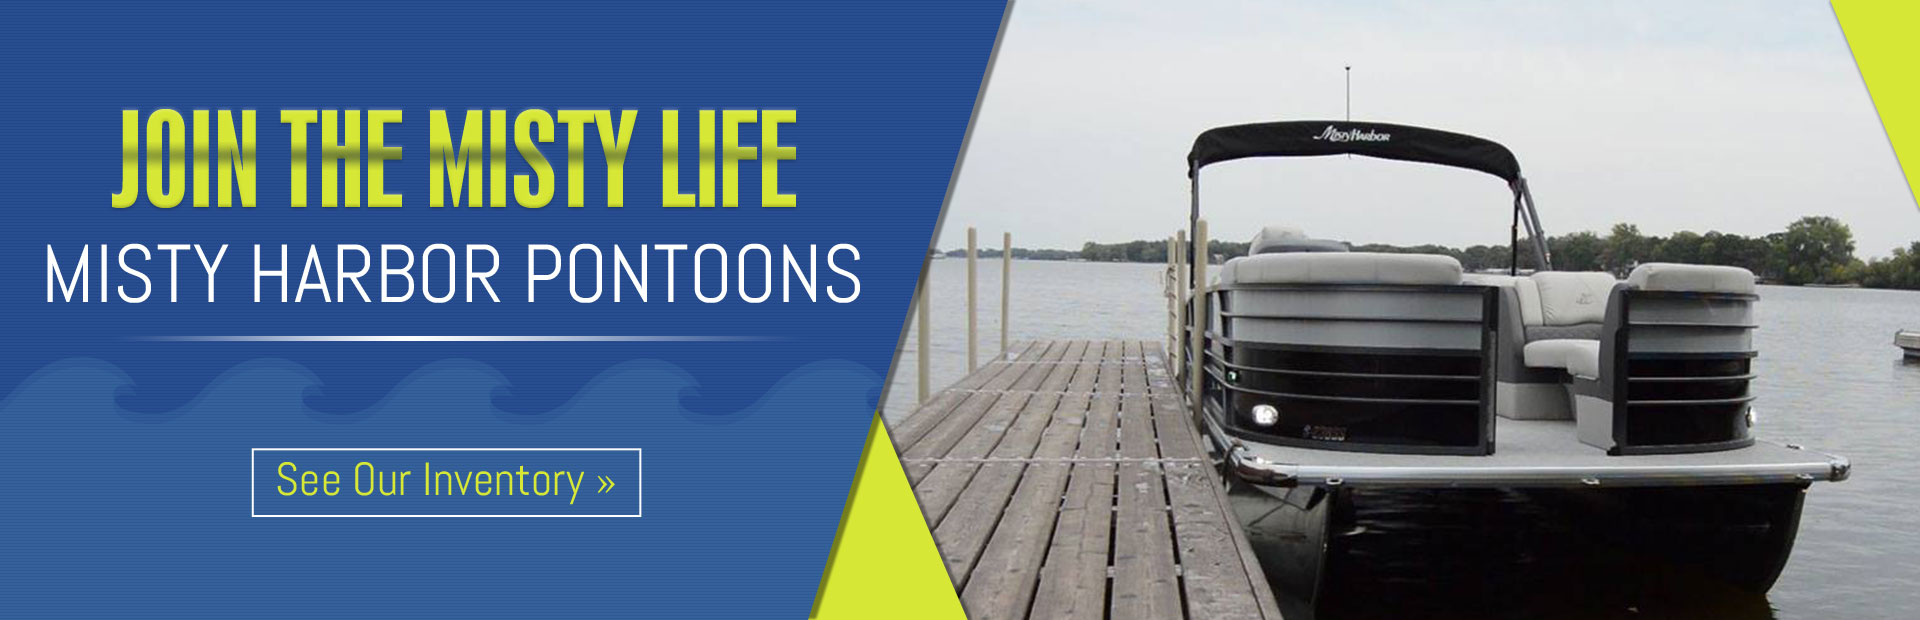 Misty Harbor Pontoons: Click here to see our inventory.